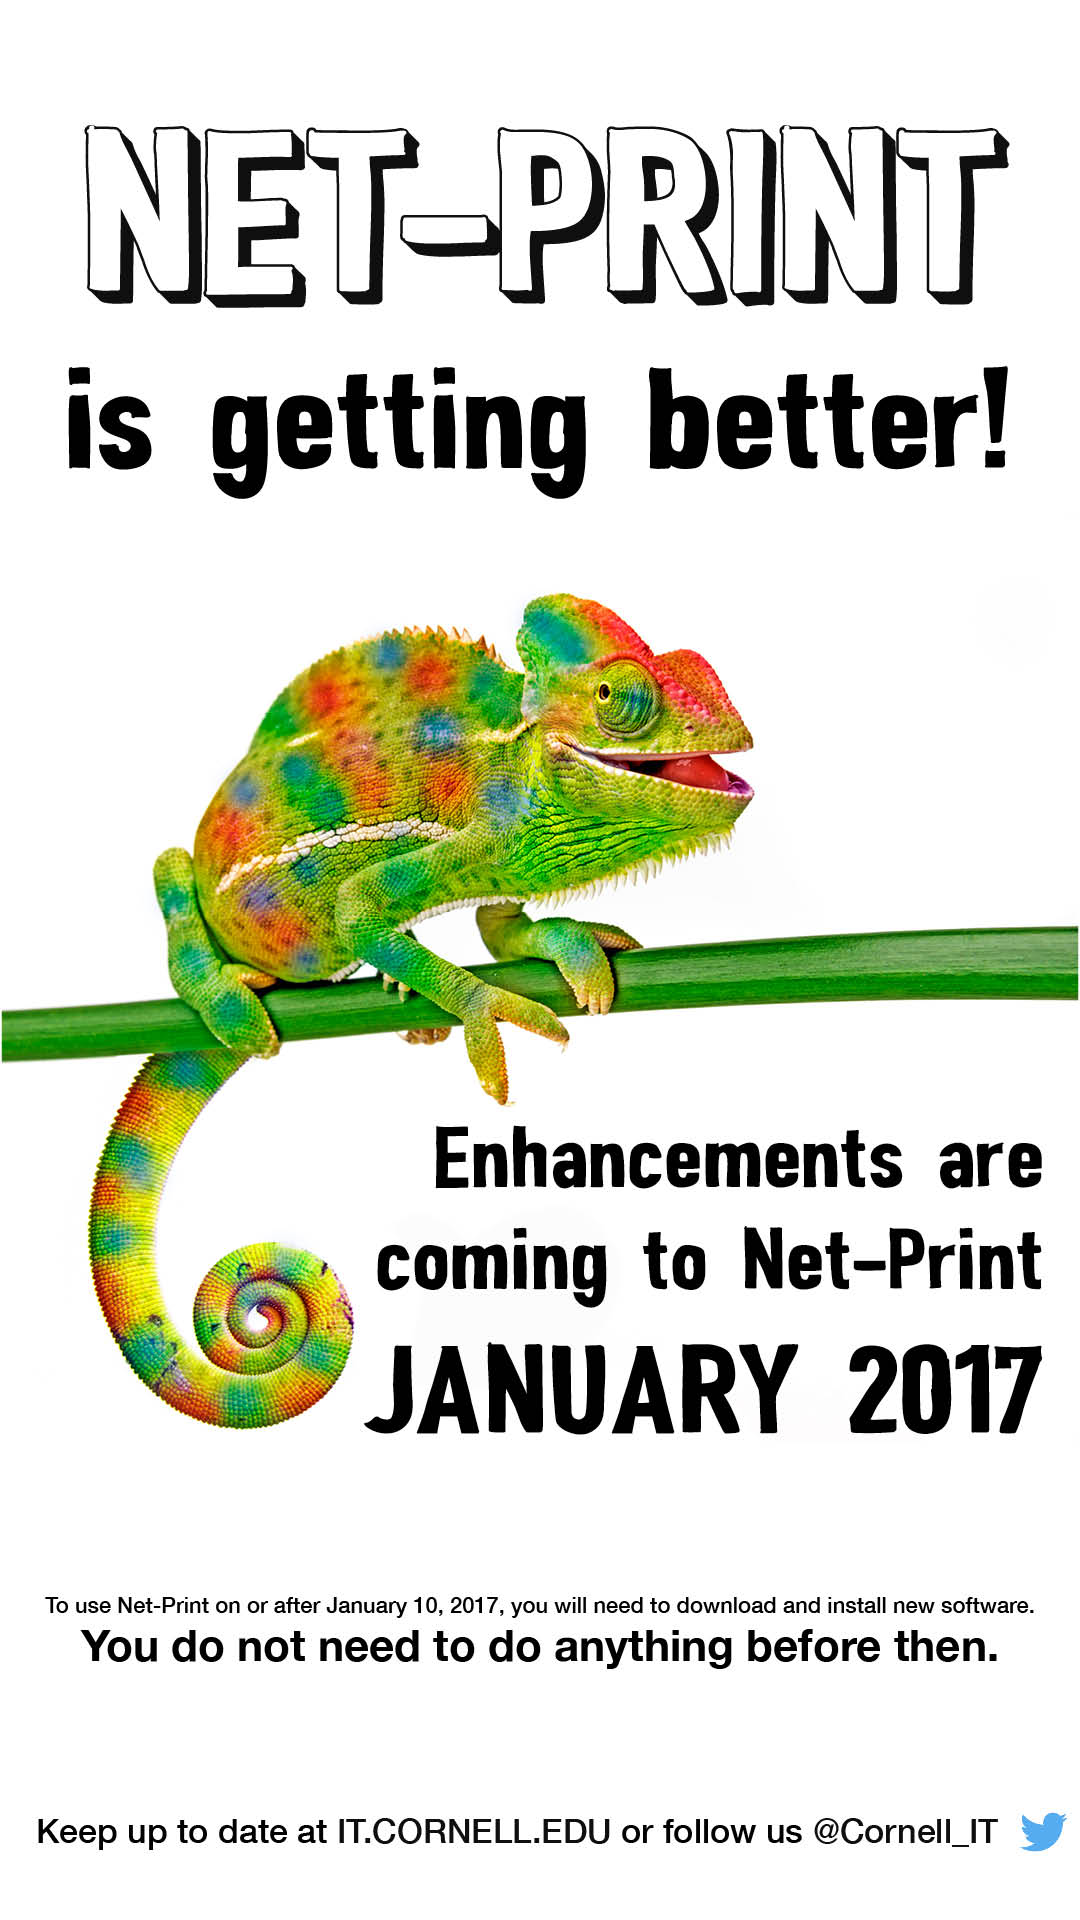 NET-PRINT is getting better! Enhancements are coming to Net-Print January 2017. Download and install new software starting Jan. 10, 2017.